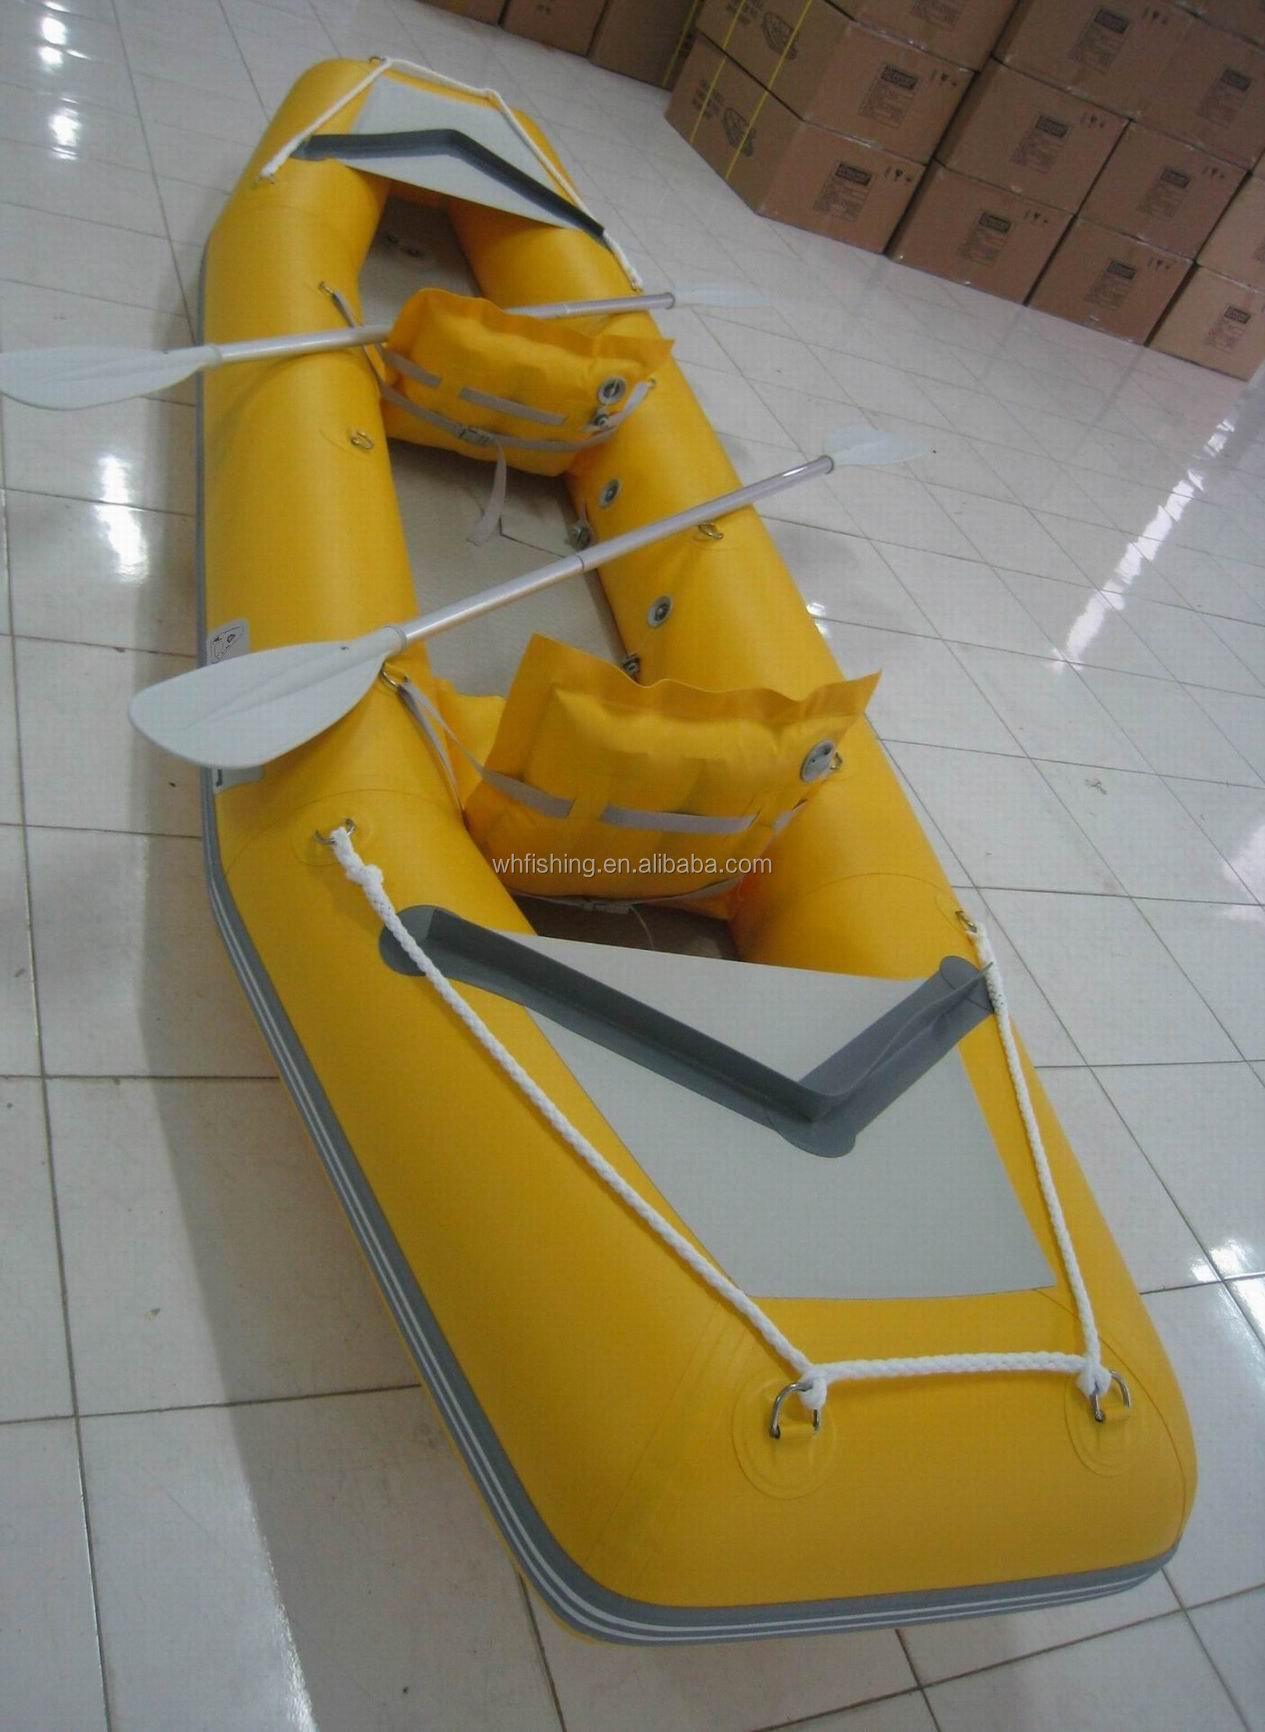 2015 New Design Low Price Boat With Sail High Speed Kayak Boats ...